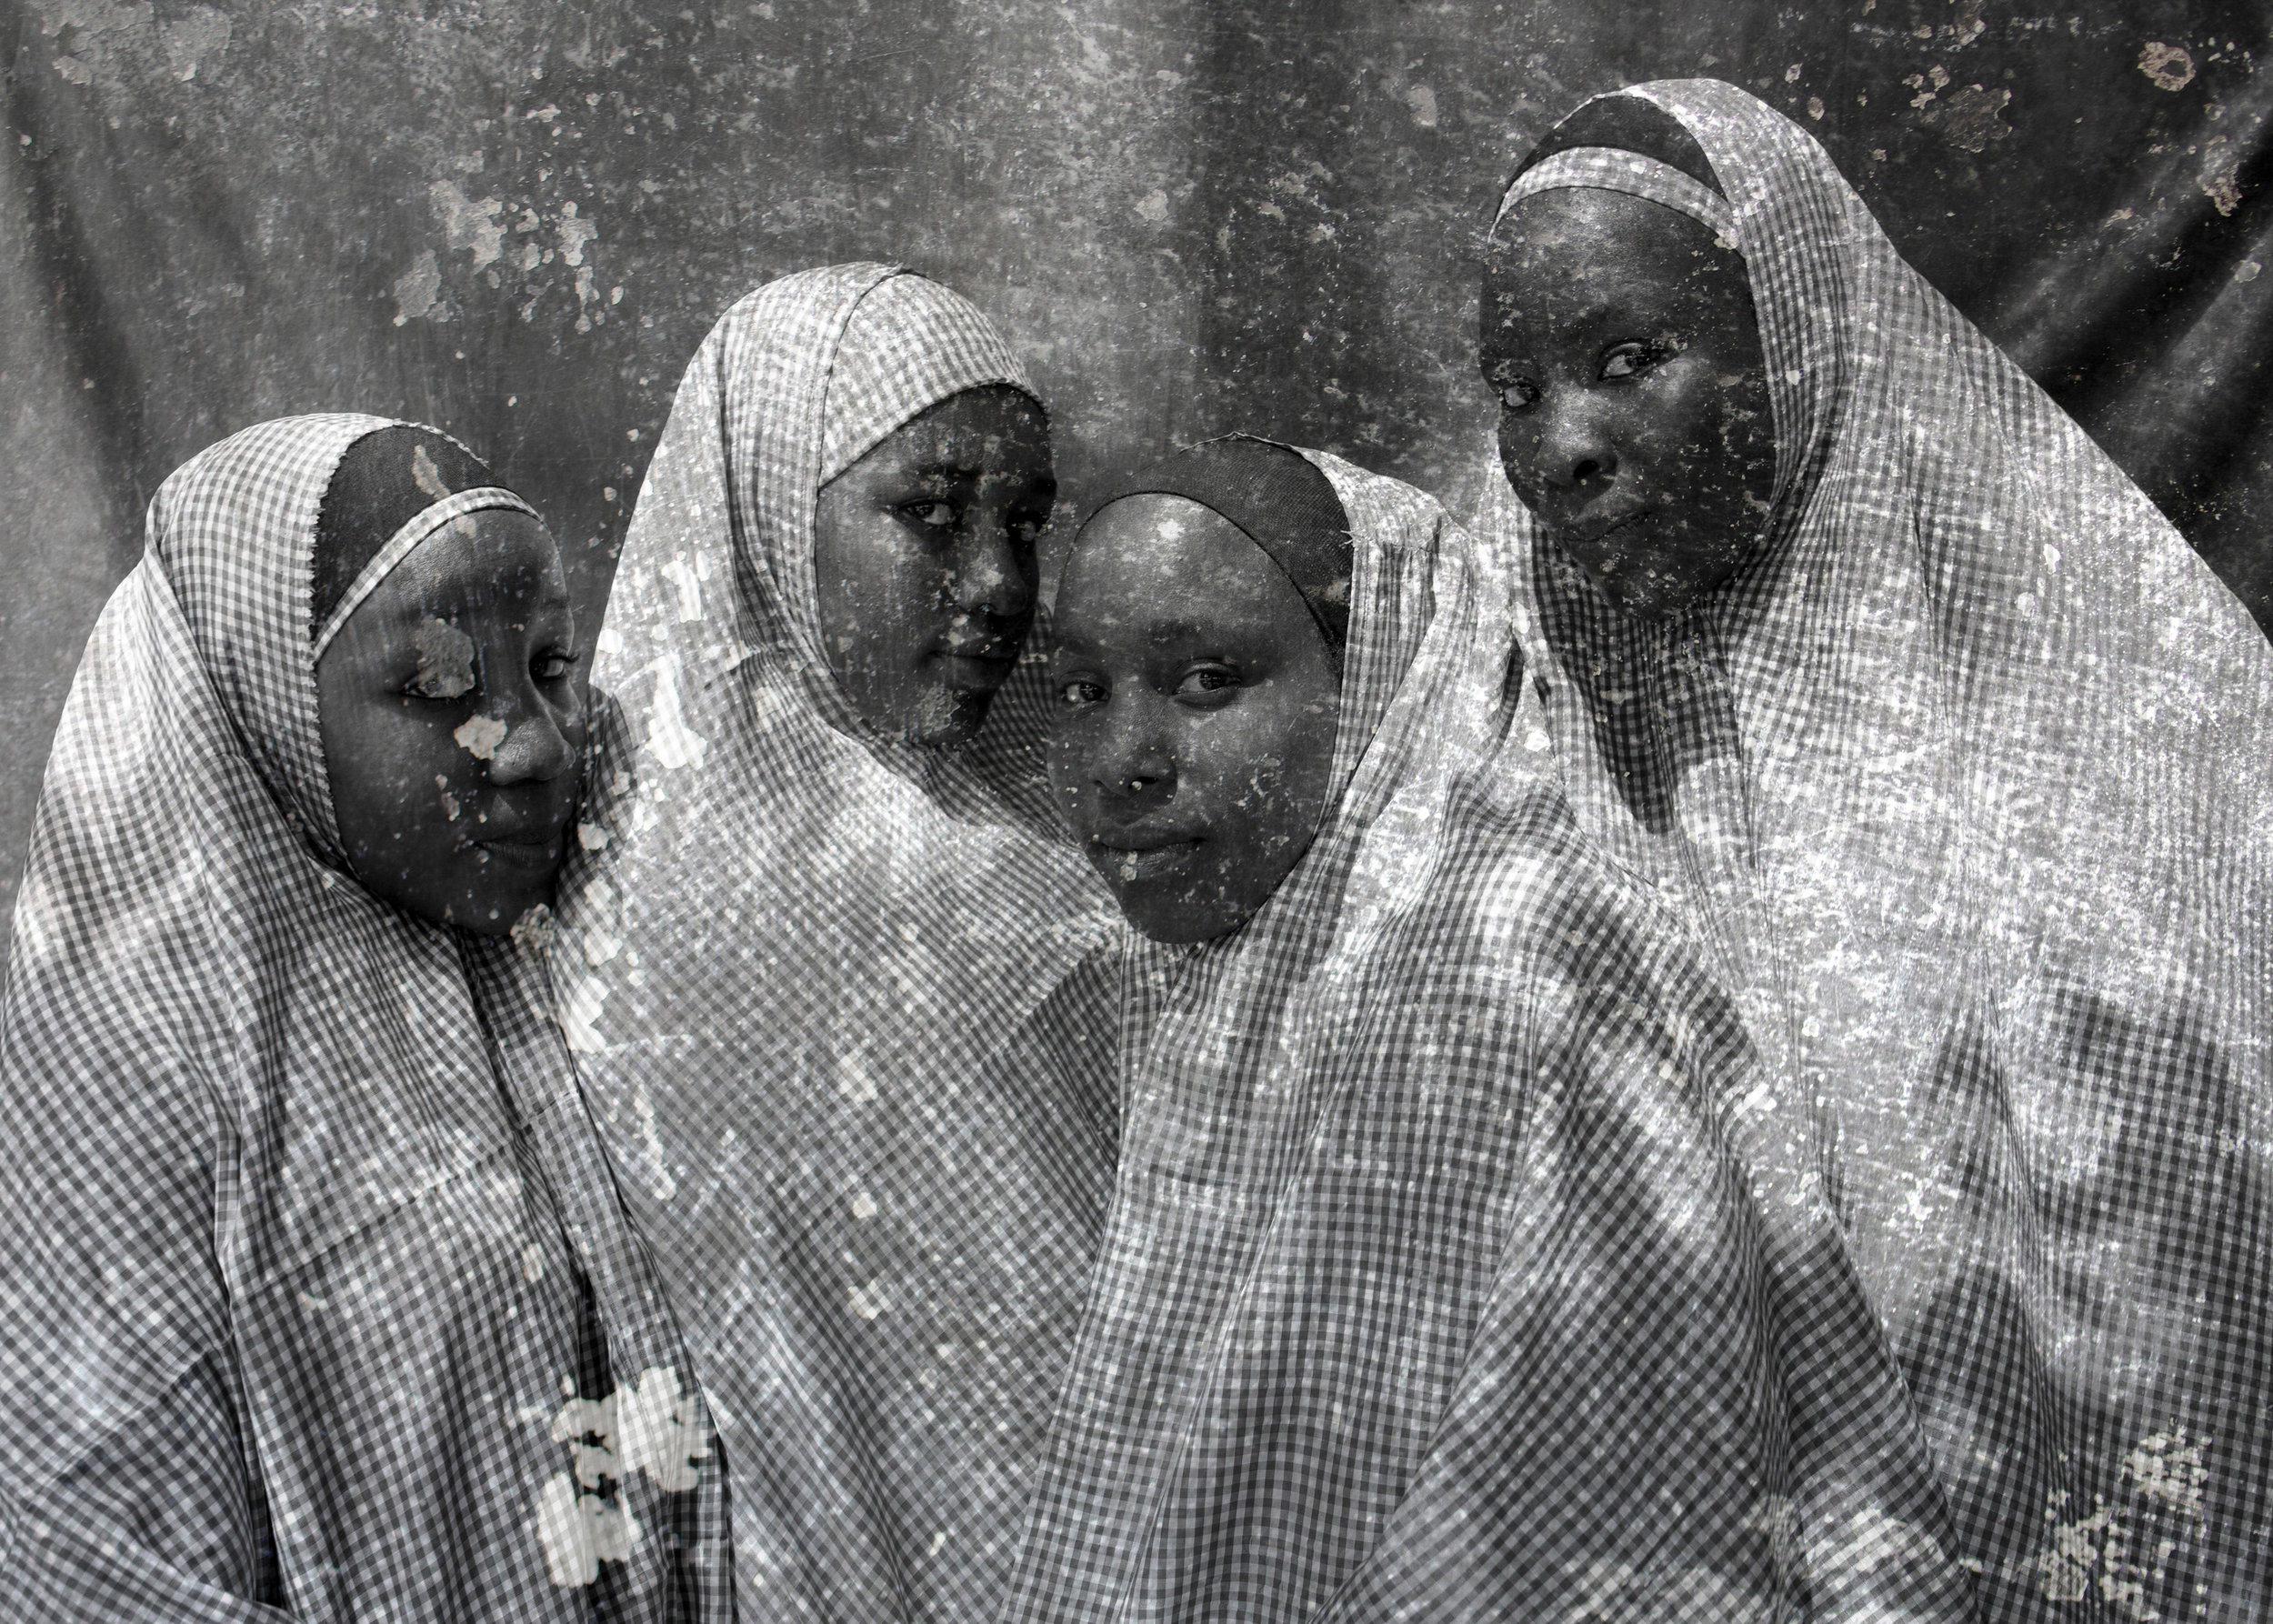 """Rukkaya, Hadiza, Falmata, and Rashida"". Education is Forbidden series. Maiduguri, Nigeria, 22"" x 31"", 2016"